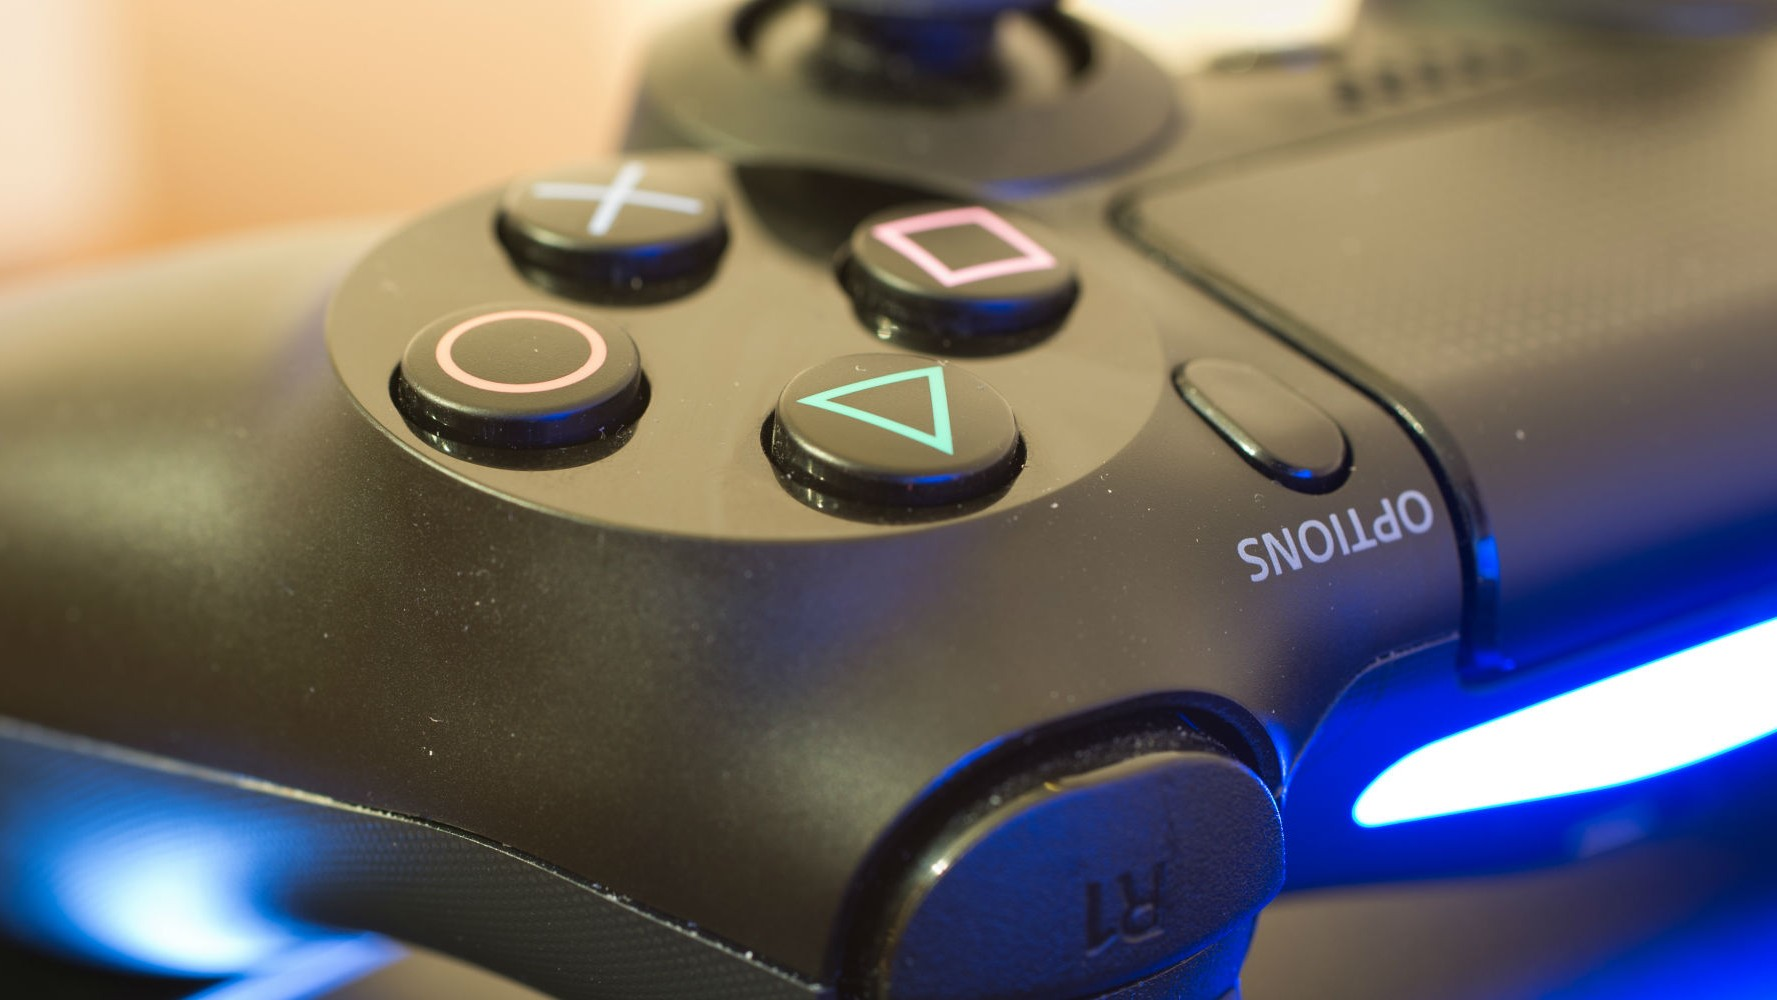 How the Baseless 'Terrorists Communicating Over Playstation 4' Rumor Got Started